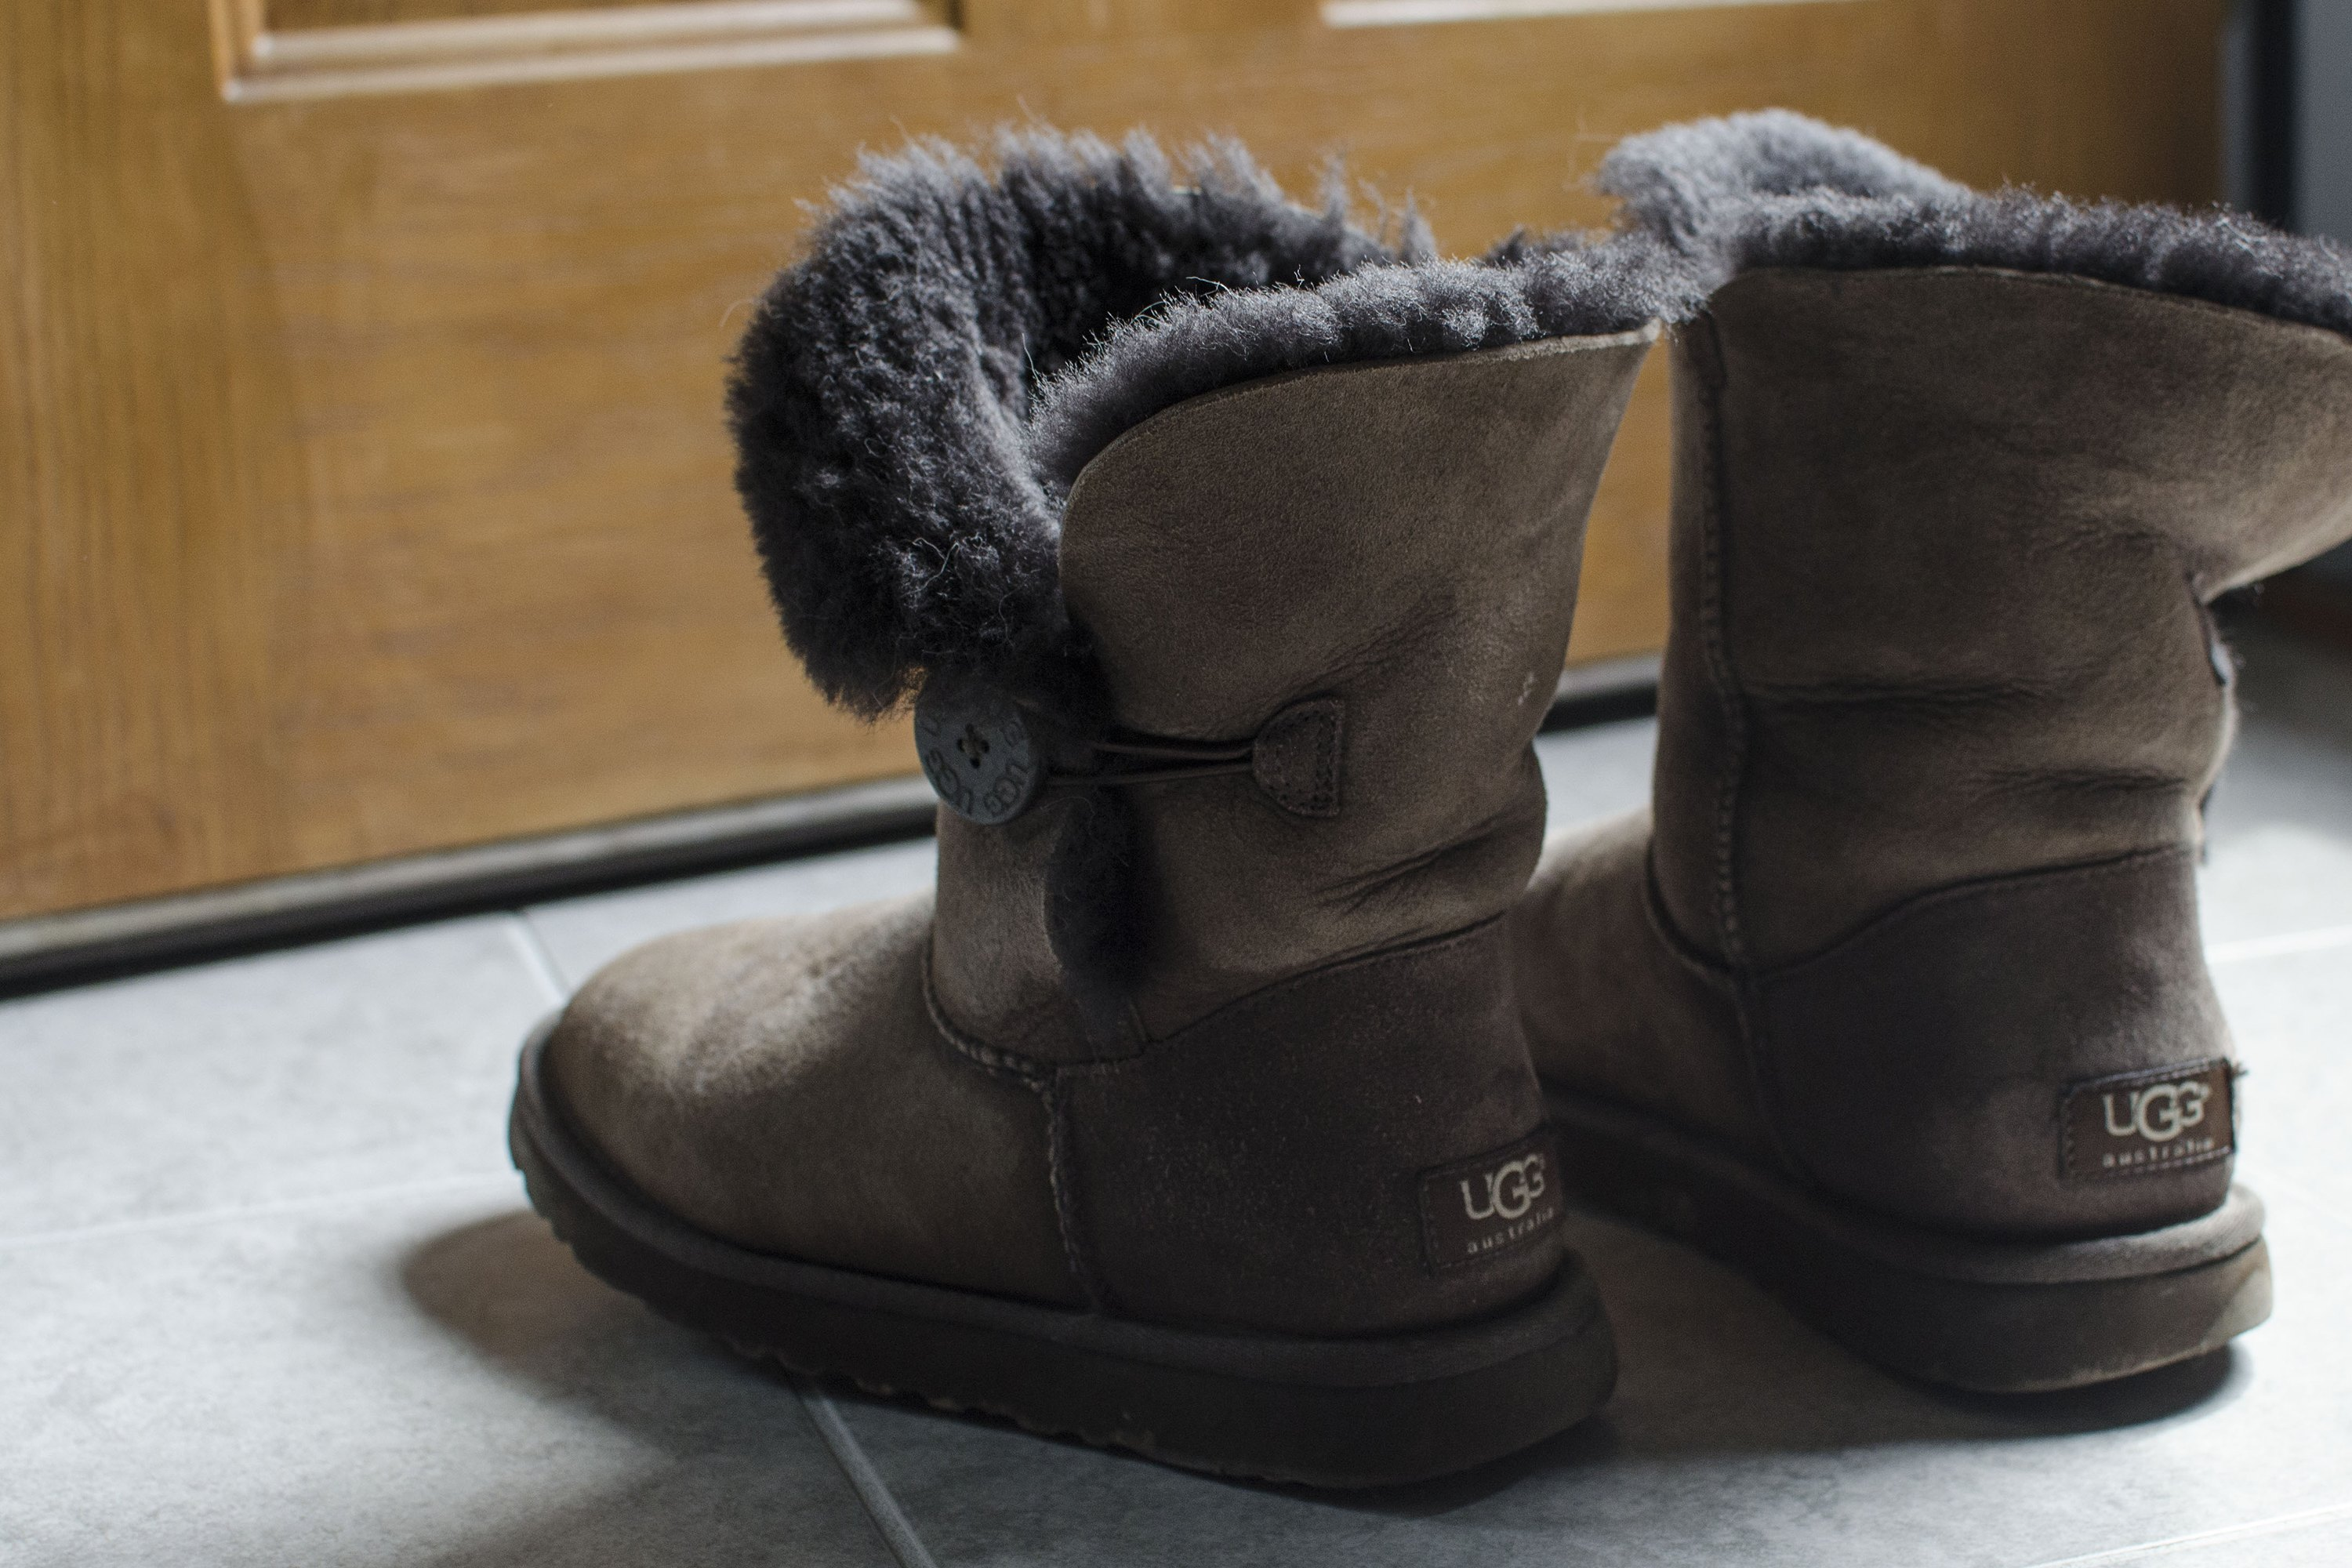 best place to purchase ugg boots